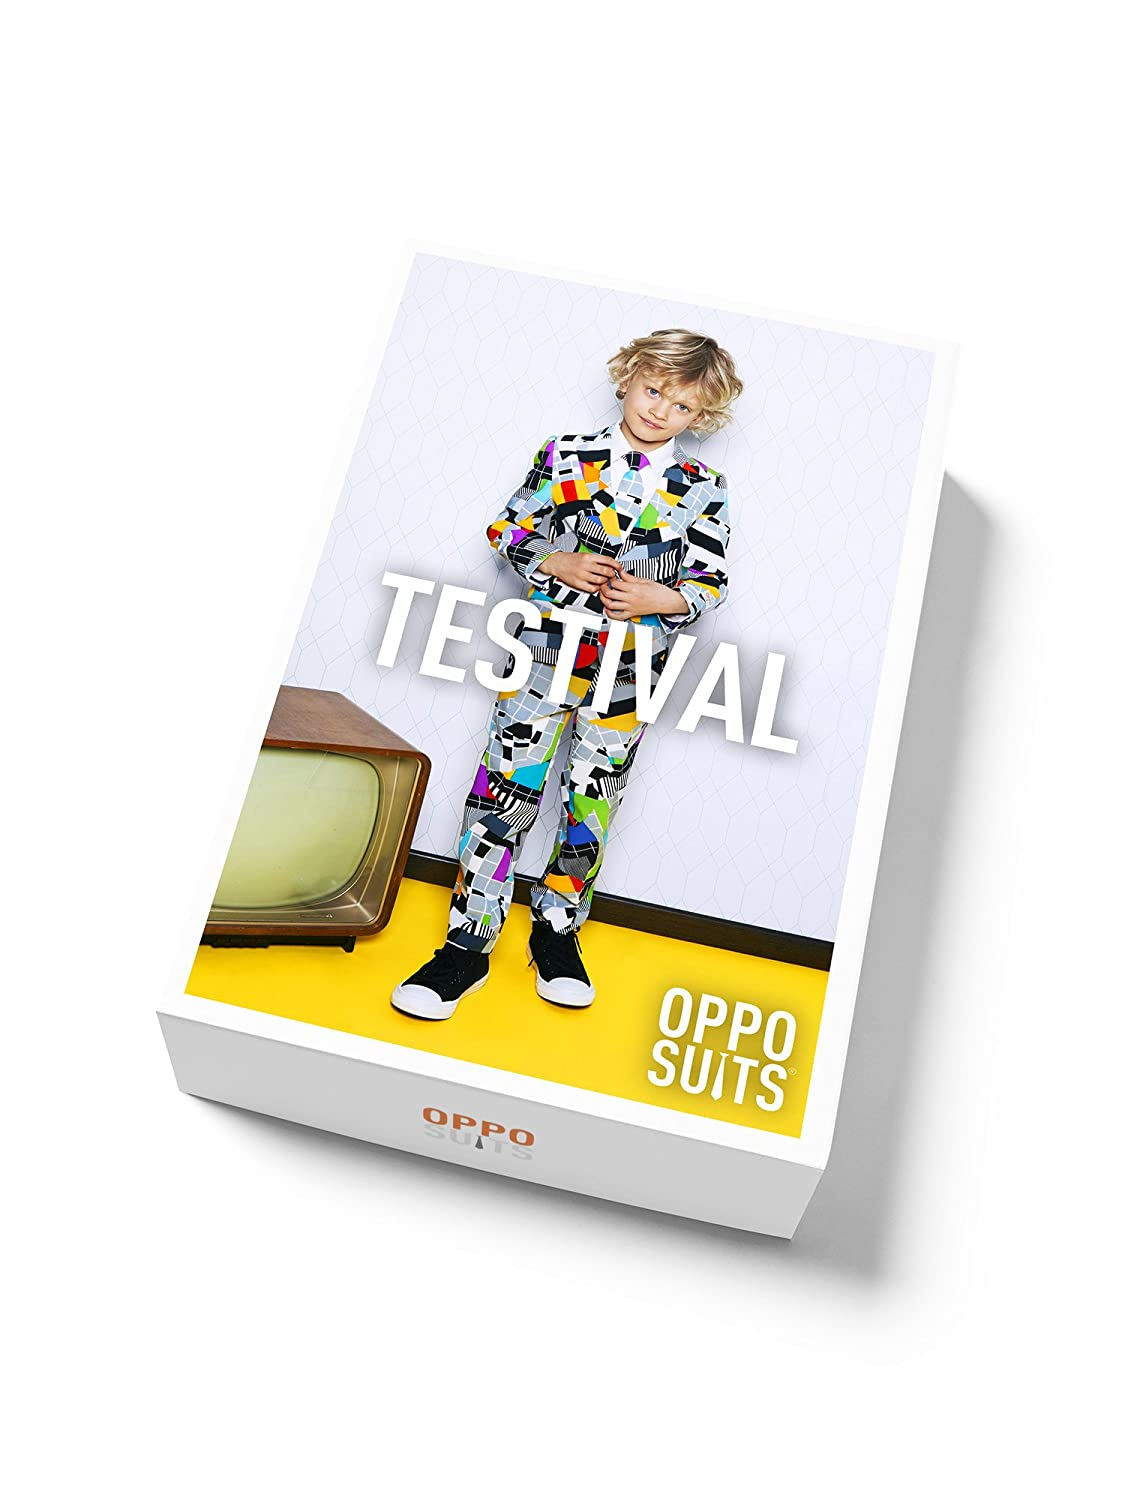 OppoSuits Crazy Suits for Boys in Different Prints Comes with Jacket Pants and Tie in Funny Designs